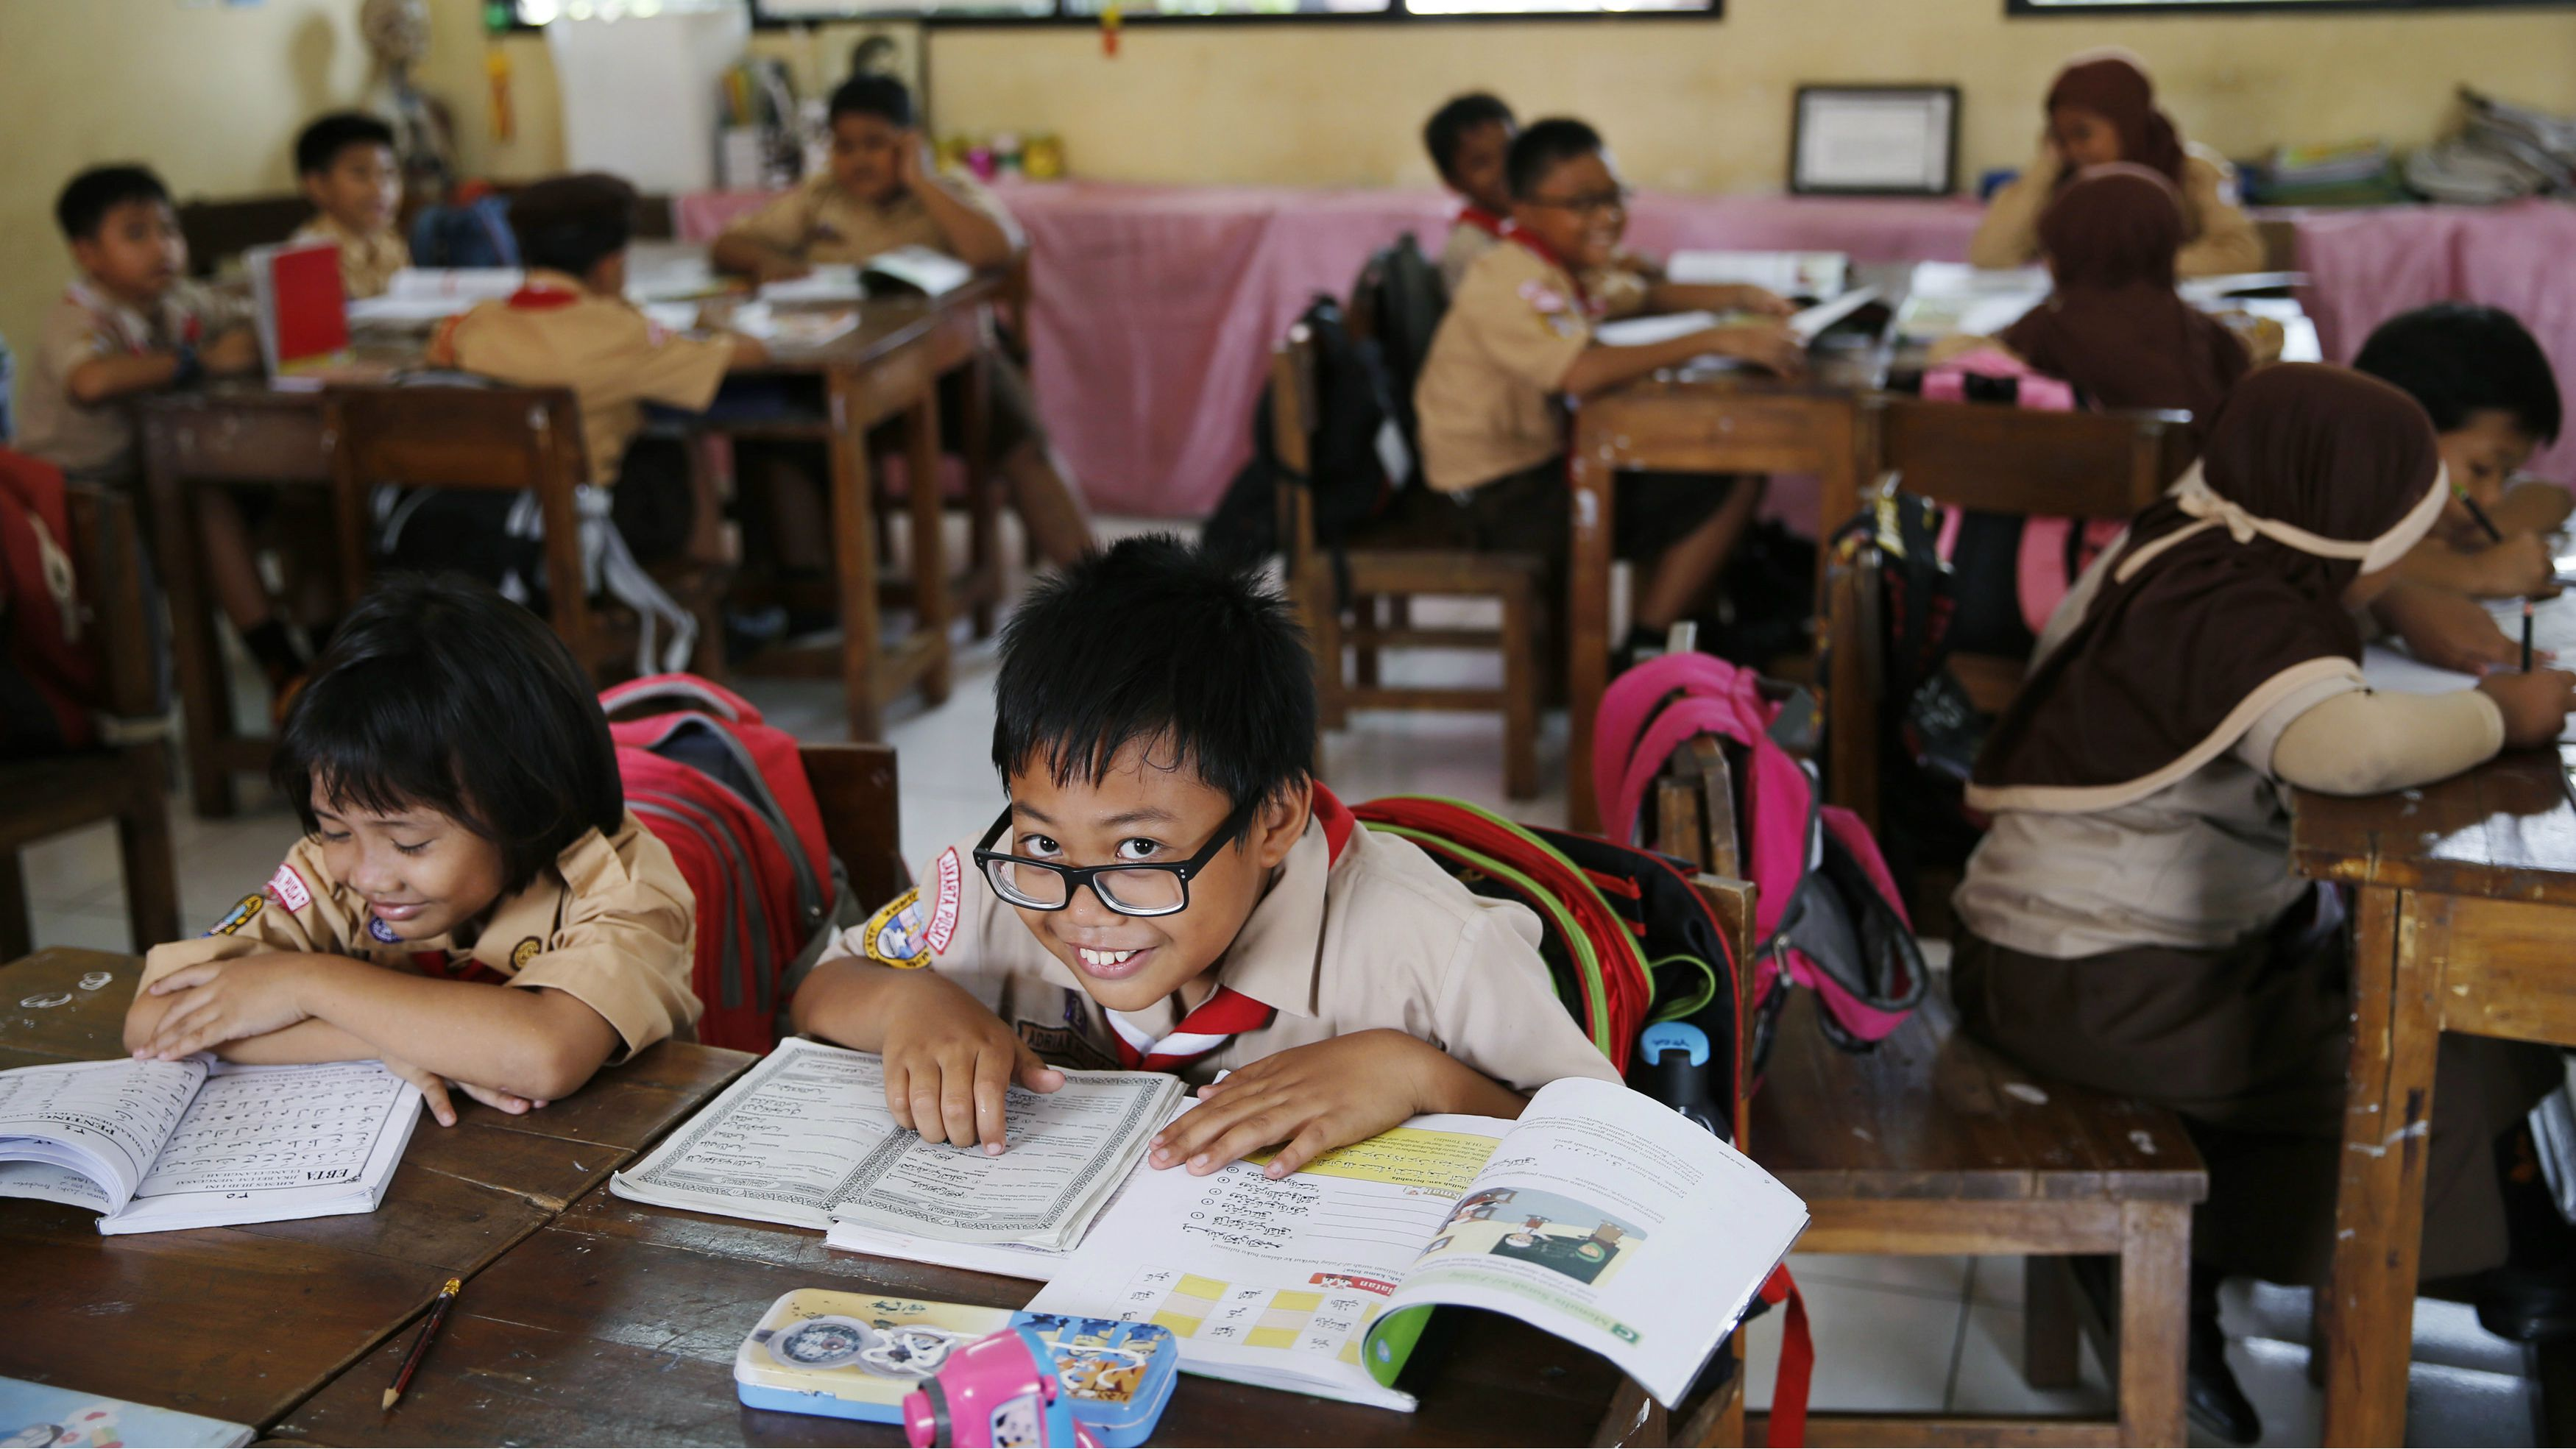 A student reacts to the camera as a teacher teaches the 2013 curriculum inside a classroom at Cempaka Putih district in Jakarta, October 15, 2014.